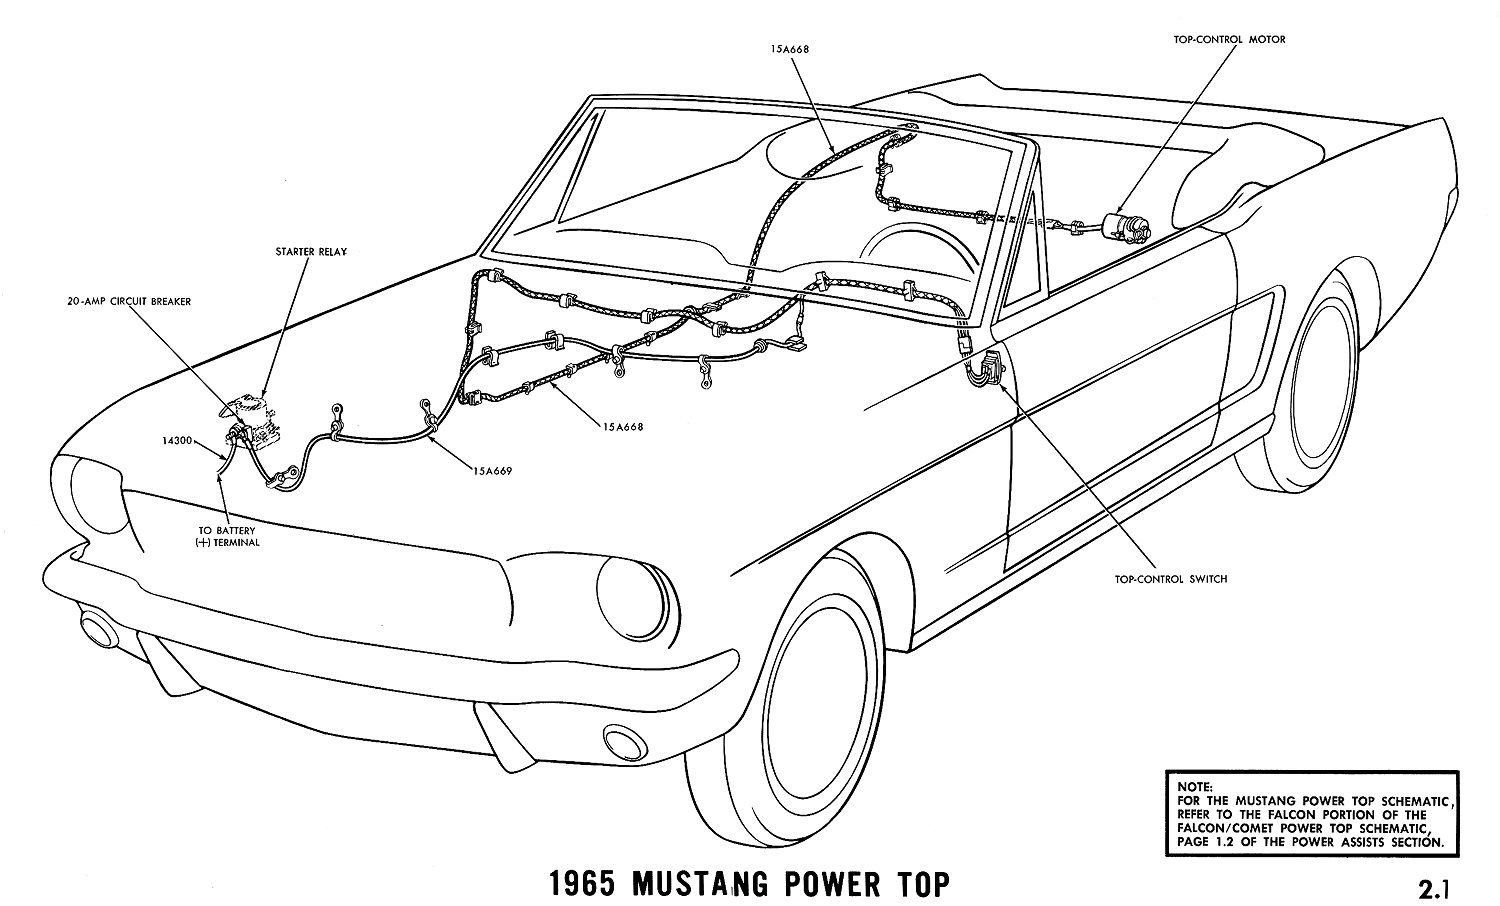 1965 mustang wiring diagrams average joe restoration rh averagejoerestoration com 1966 Mustang Dash Wiring Diagram 1966 Mustang Dash Wiring Diagram